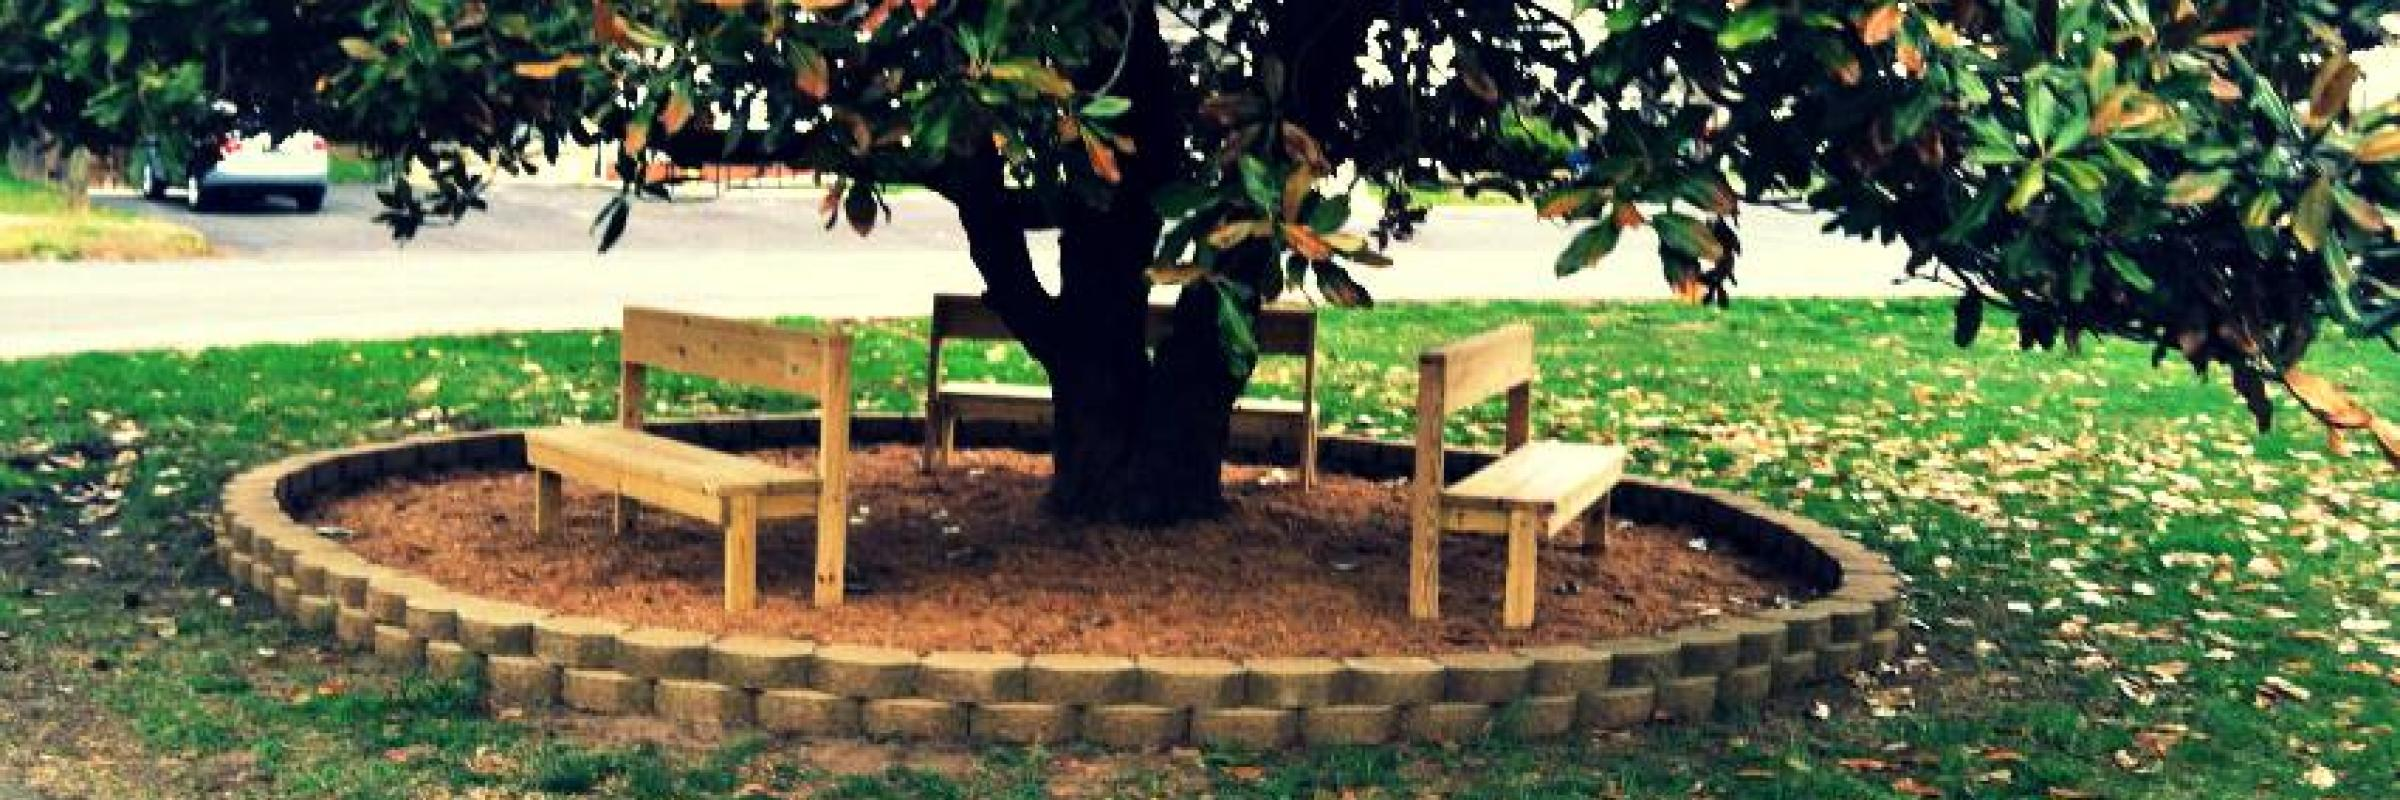 Park Benches Around a Tree